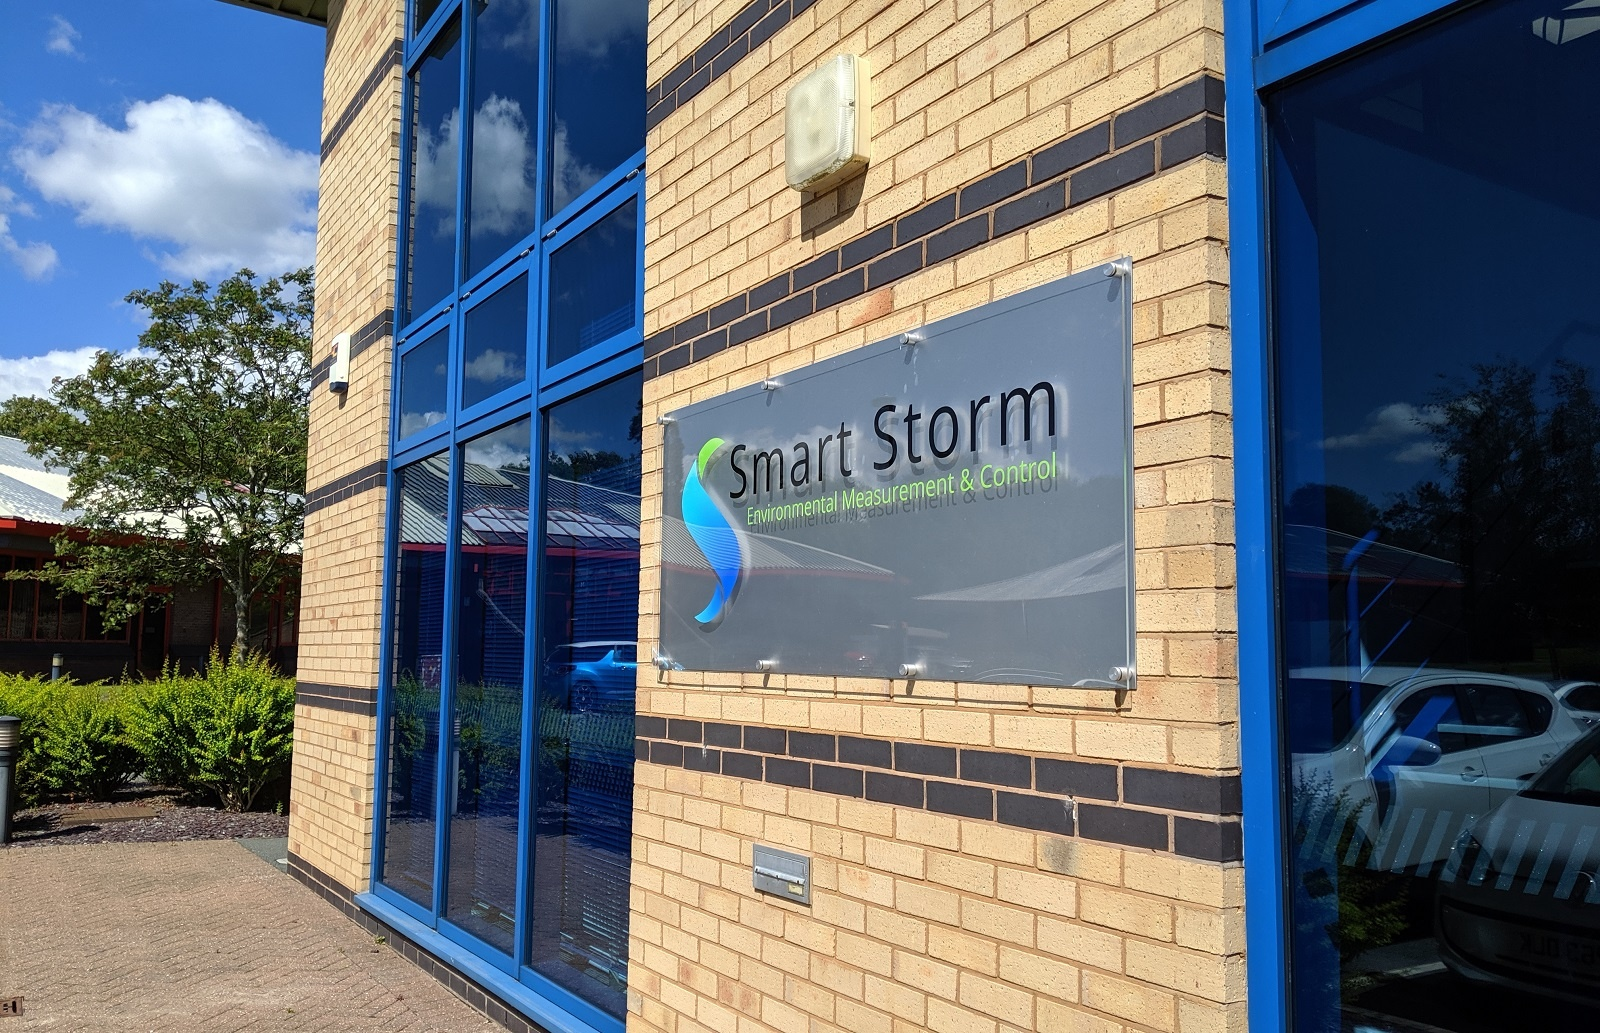 Smart Storm Ltd move their head office to Bangor